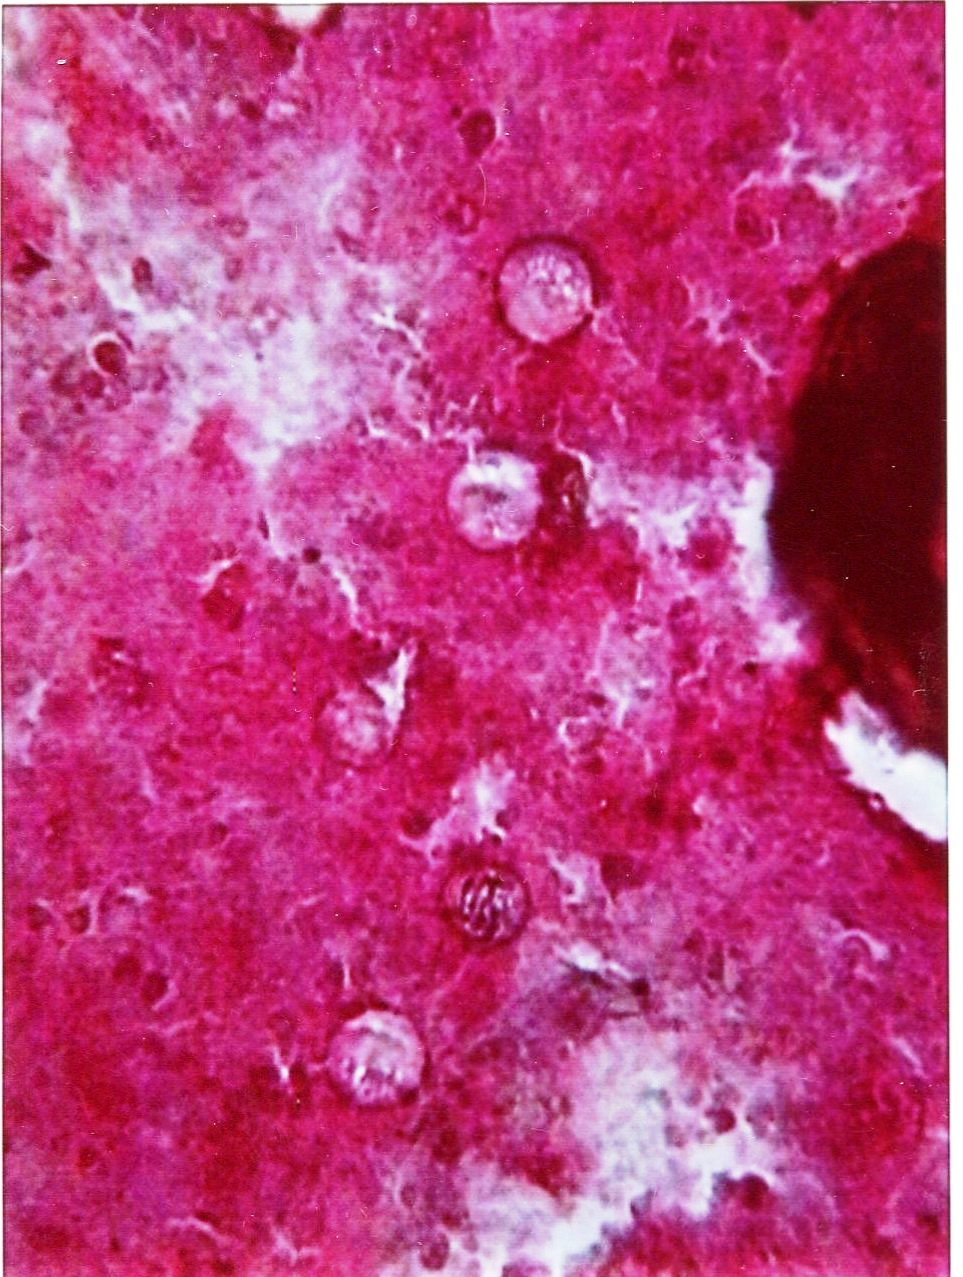 Cyclospora cayetanensis : Parasitology Center